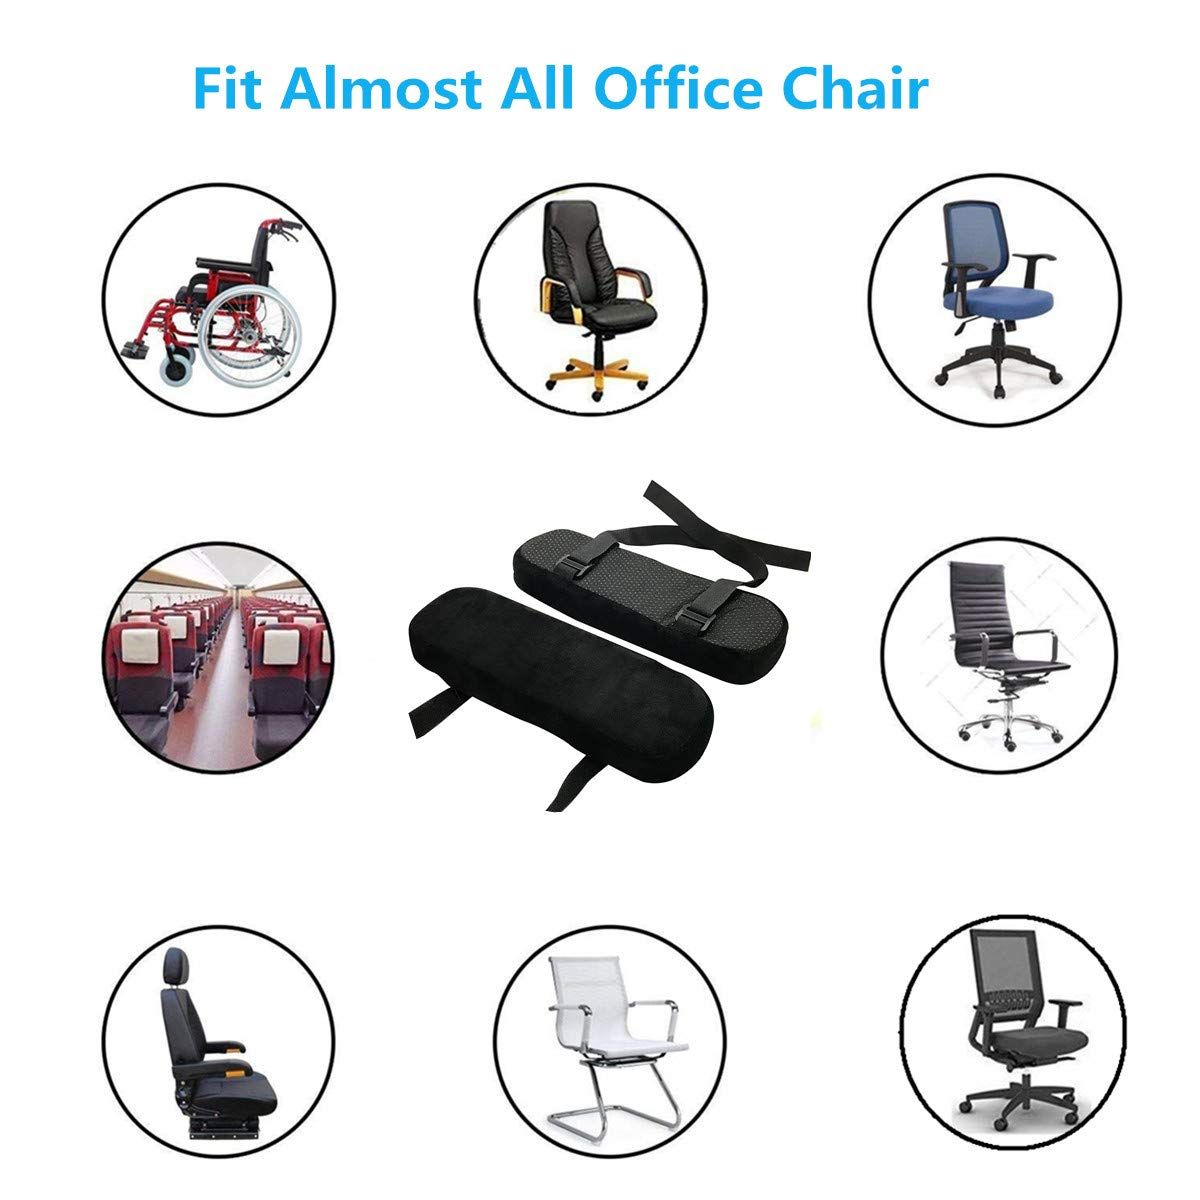 Chair Armrest Pads Memory Foam Comfortable Elbow Pillows for Office Chair Arm Support Forearm Pressure Relief Soft Cushion Anti-Slip Bottom Black 2 Pack